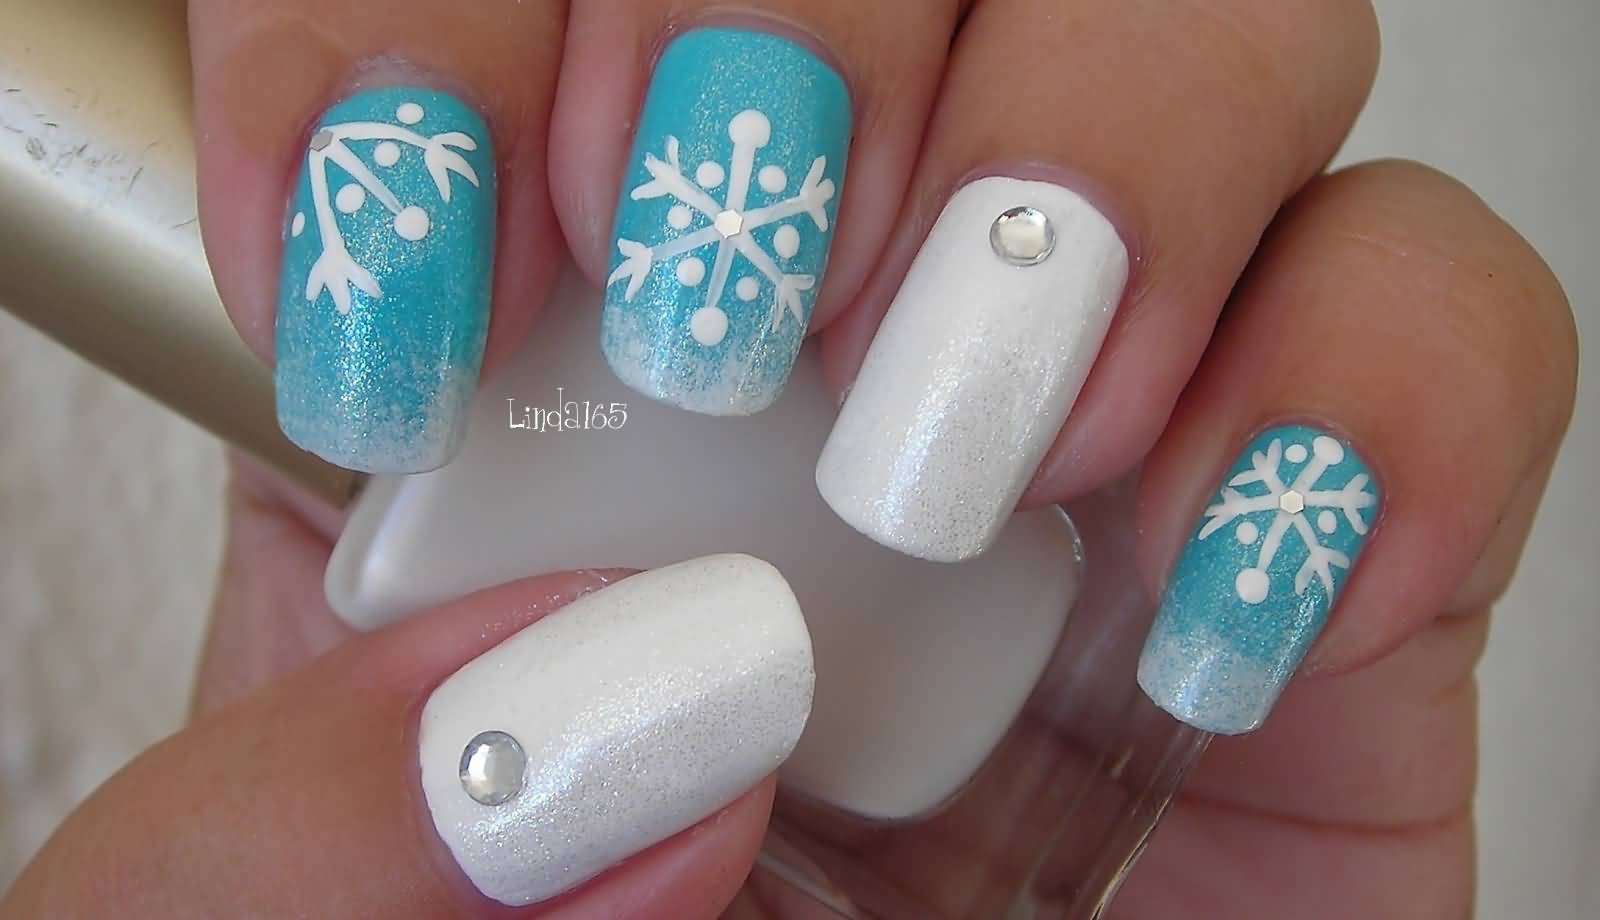 Blue Nails With White Snowflakes Design Nail Art Tutorial Video